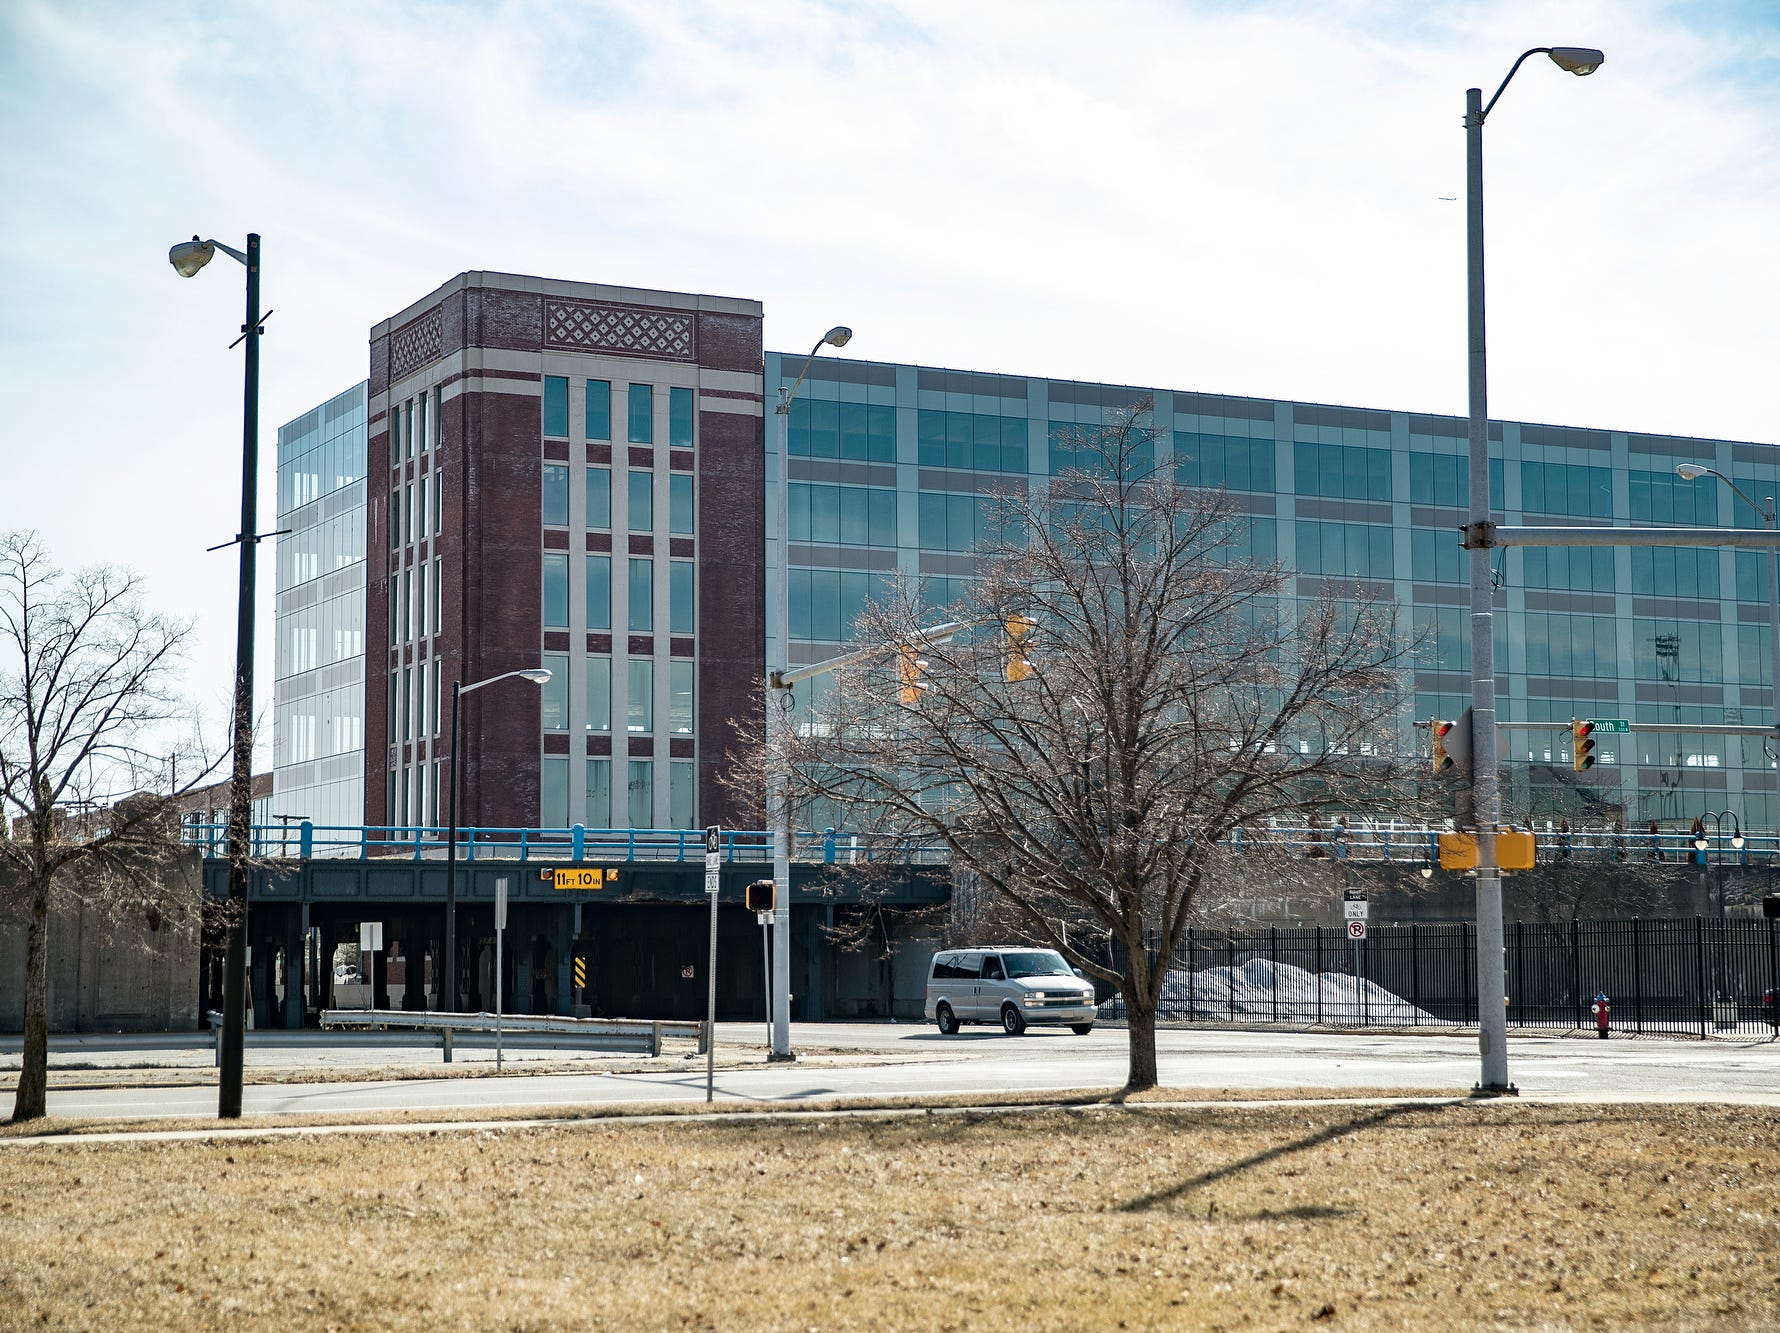 The former Studebaker plant is seen in South Bend, Ind. on Tuesday, March 12, 2019. The car manufacturer shrunk over time and finally closed in 1963, ultimately eliminating roughly 24,000 jobs. Between the early 1960s and 2011, South Bend's population decreased by 25 percent.